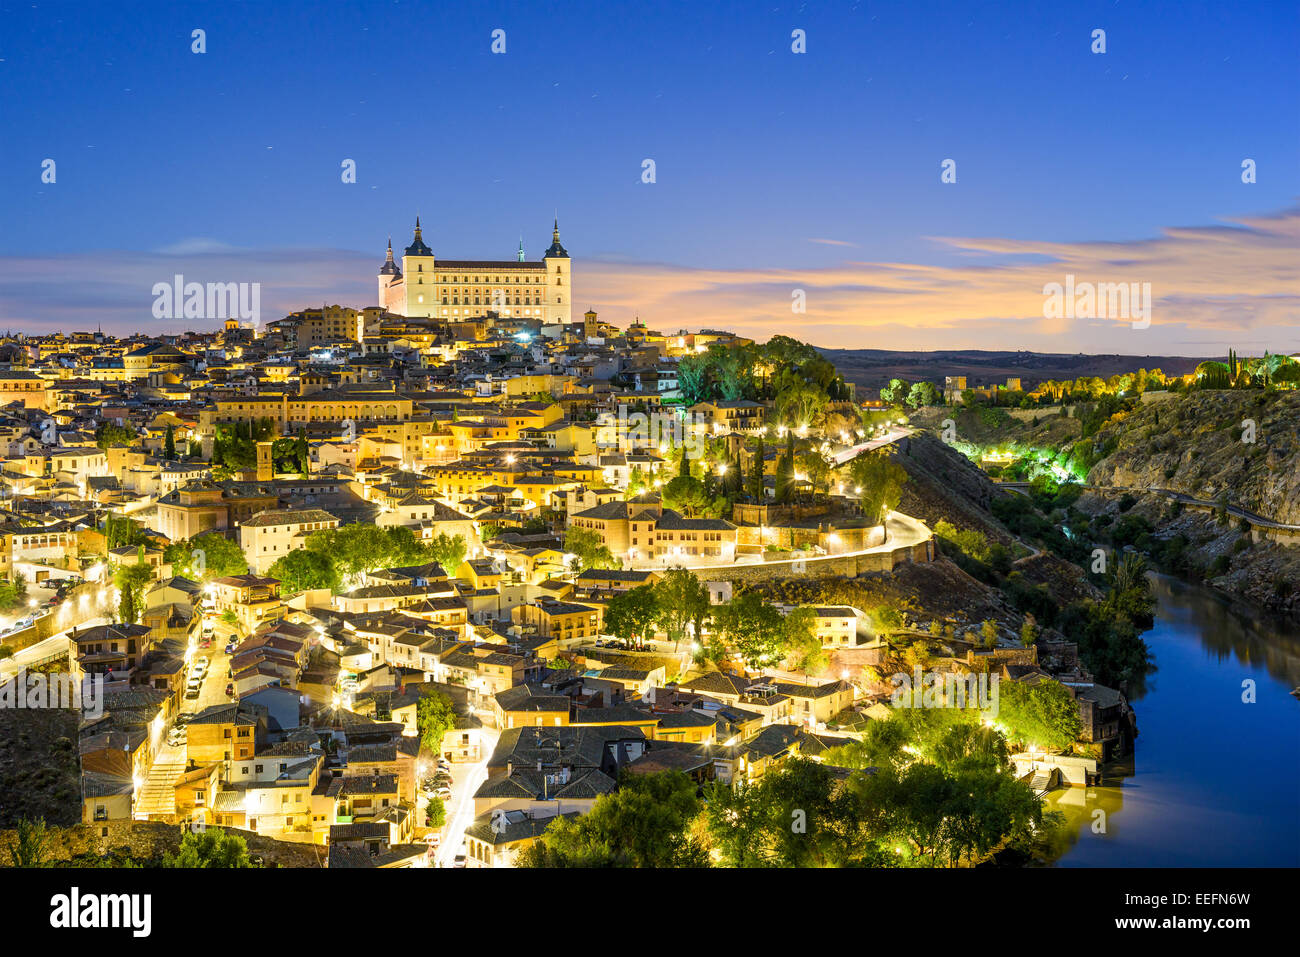 Toledo, Spain old town skyline at dawn. Stock Photo